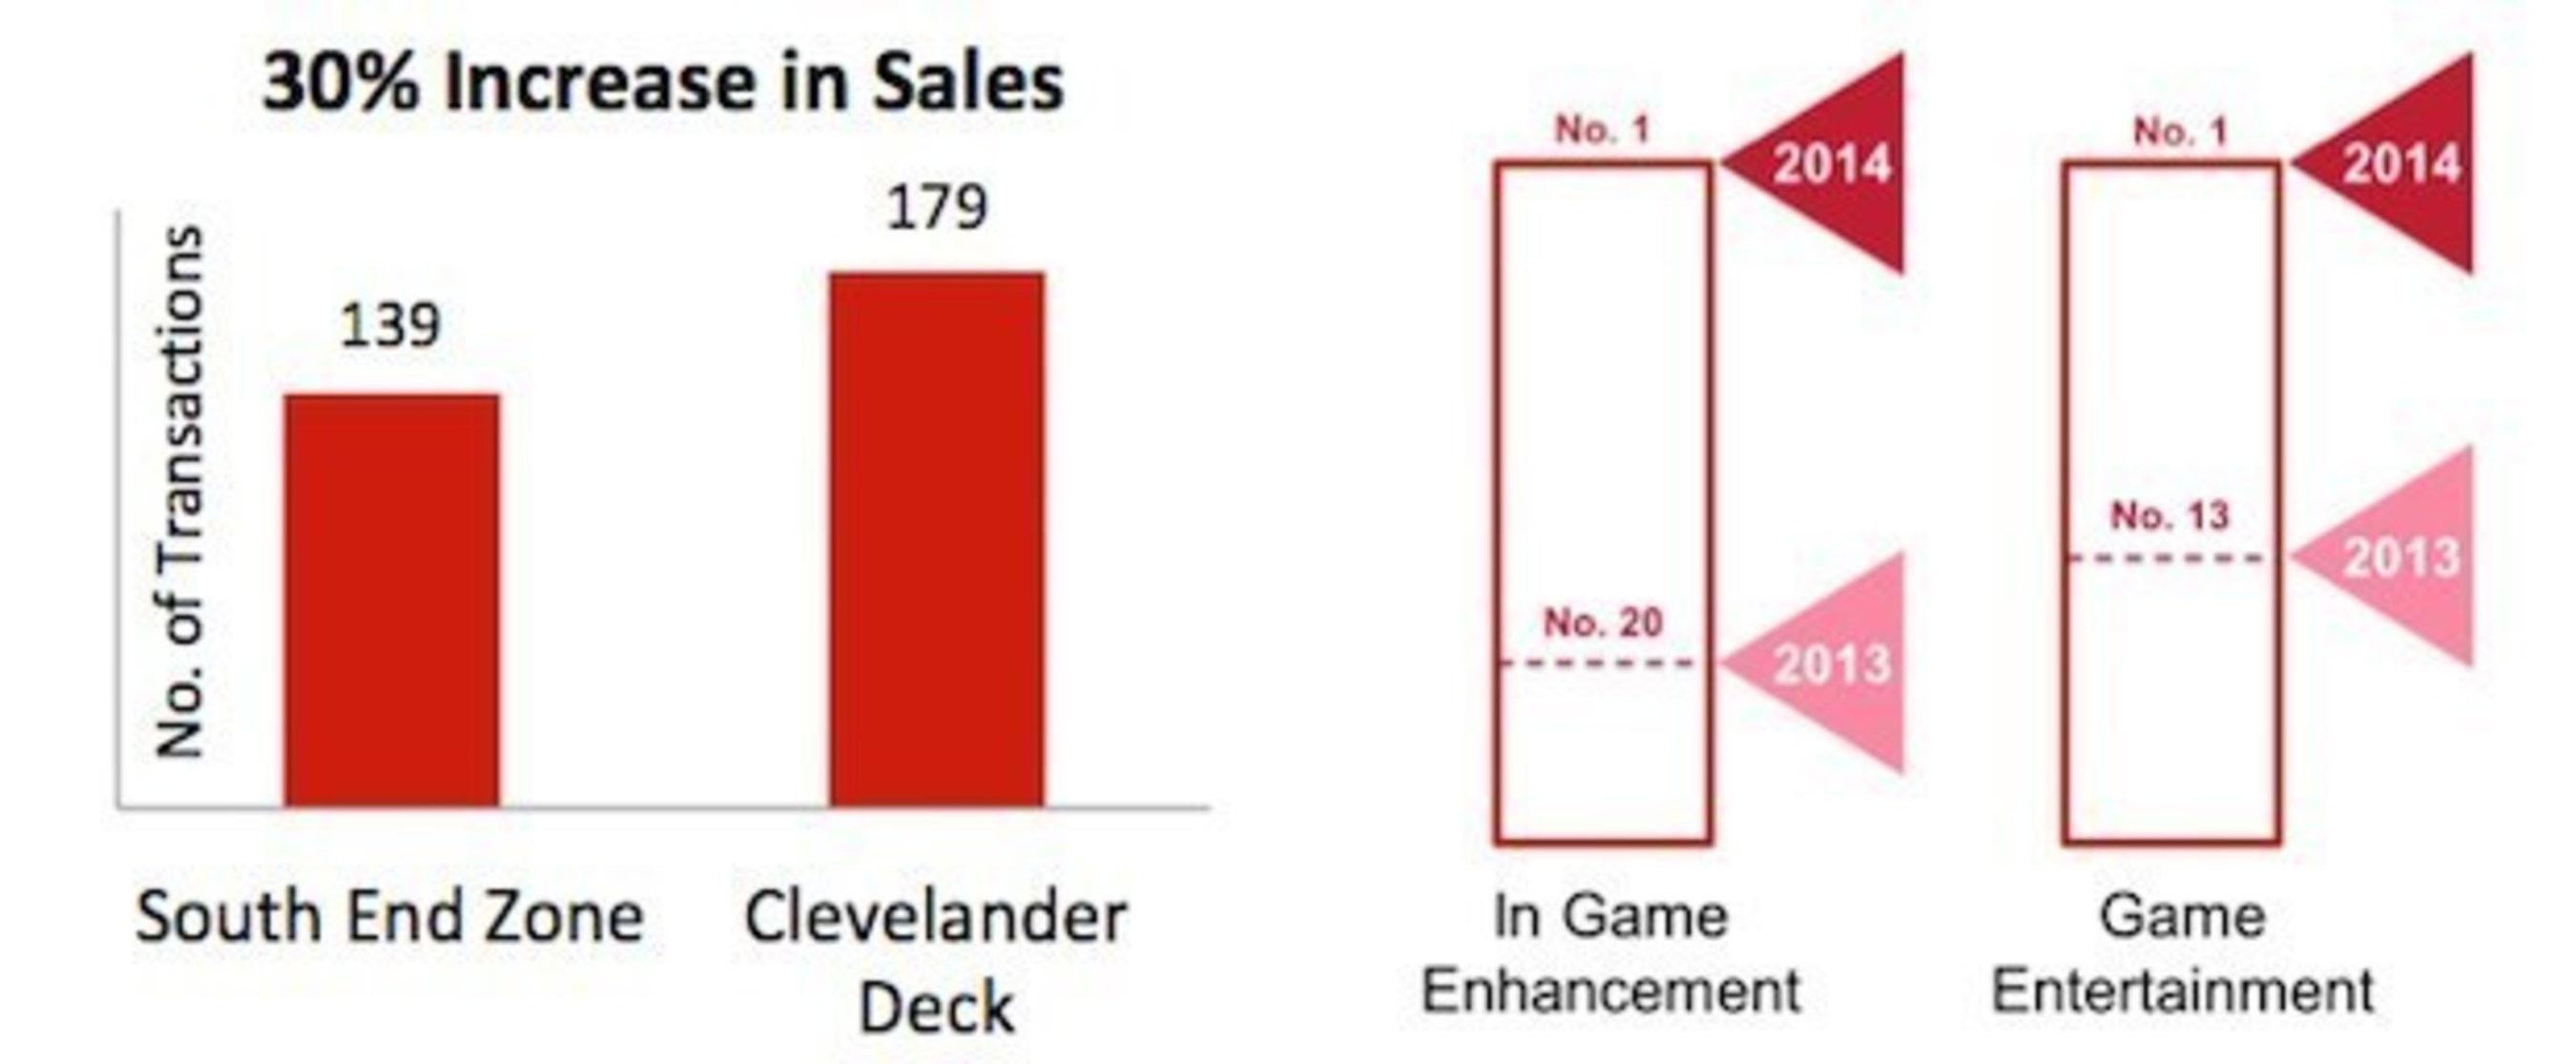 """The Jacksonville Jaguars improved their """"In Game Enhancements"""", """"Game Entertainment"""", and sales with the help of UL."""